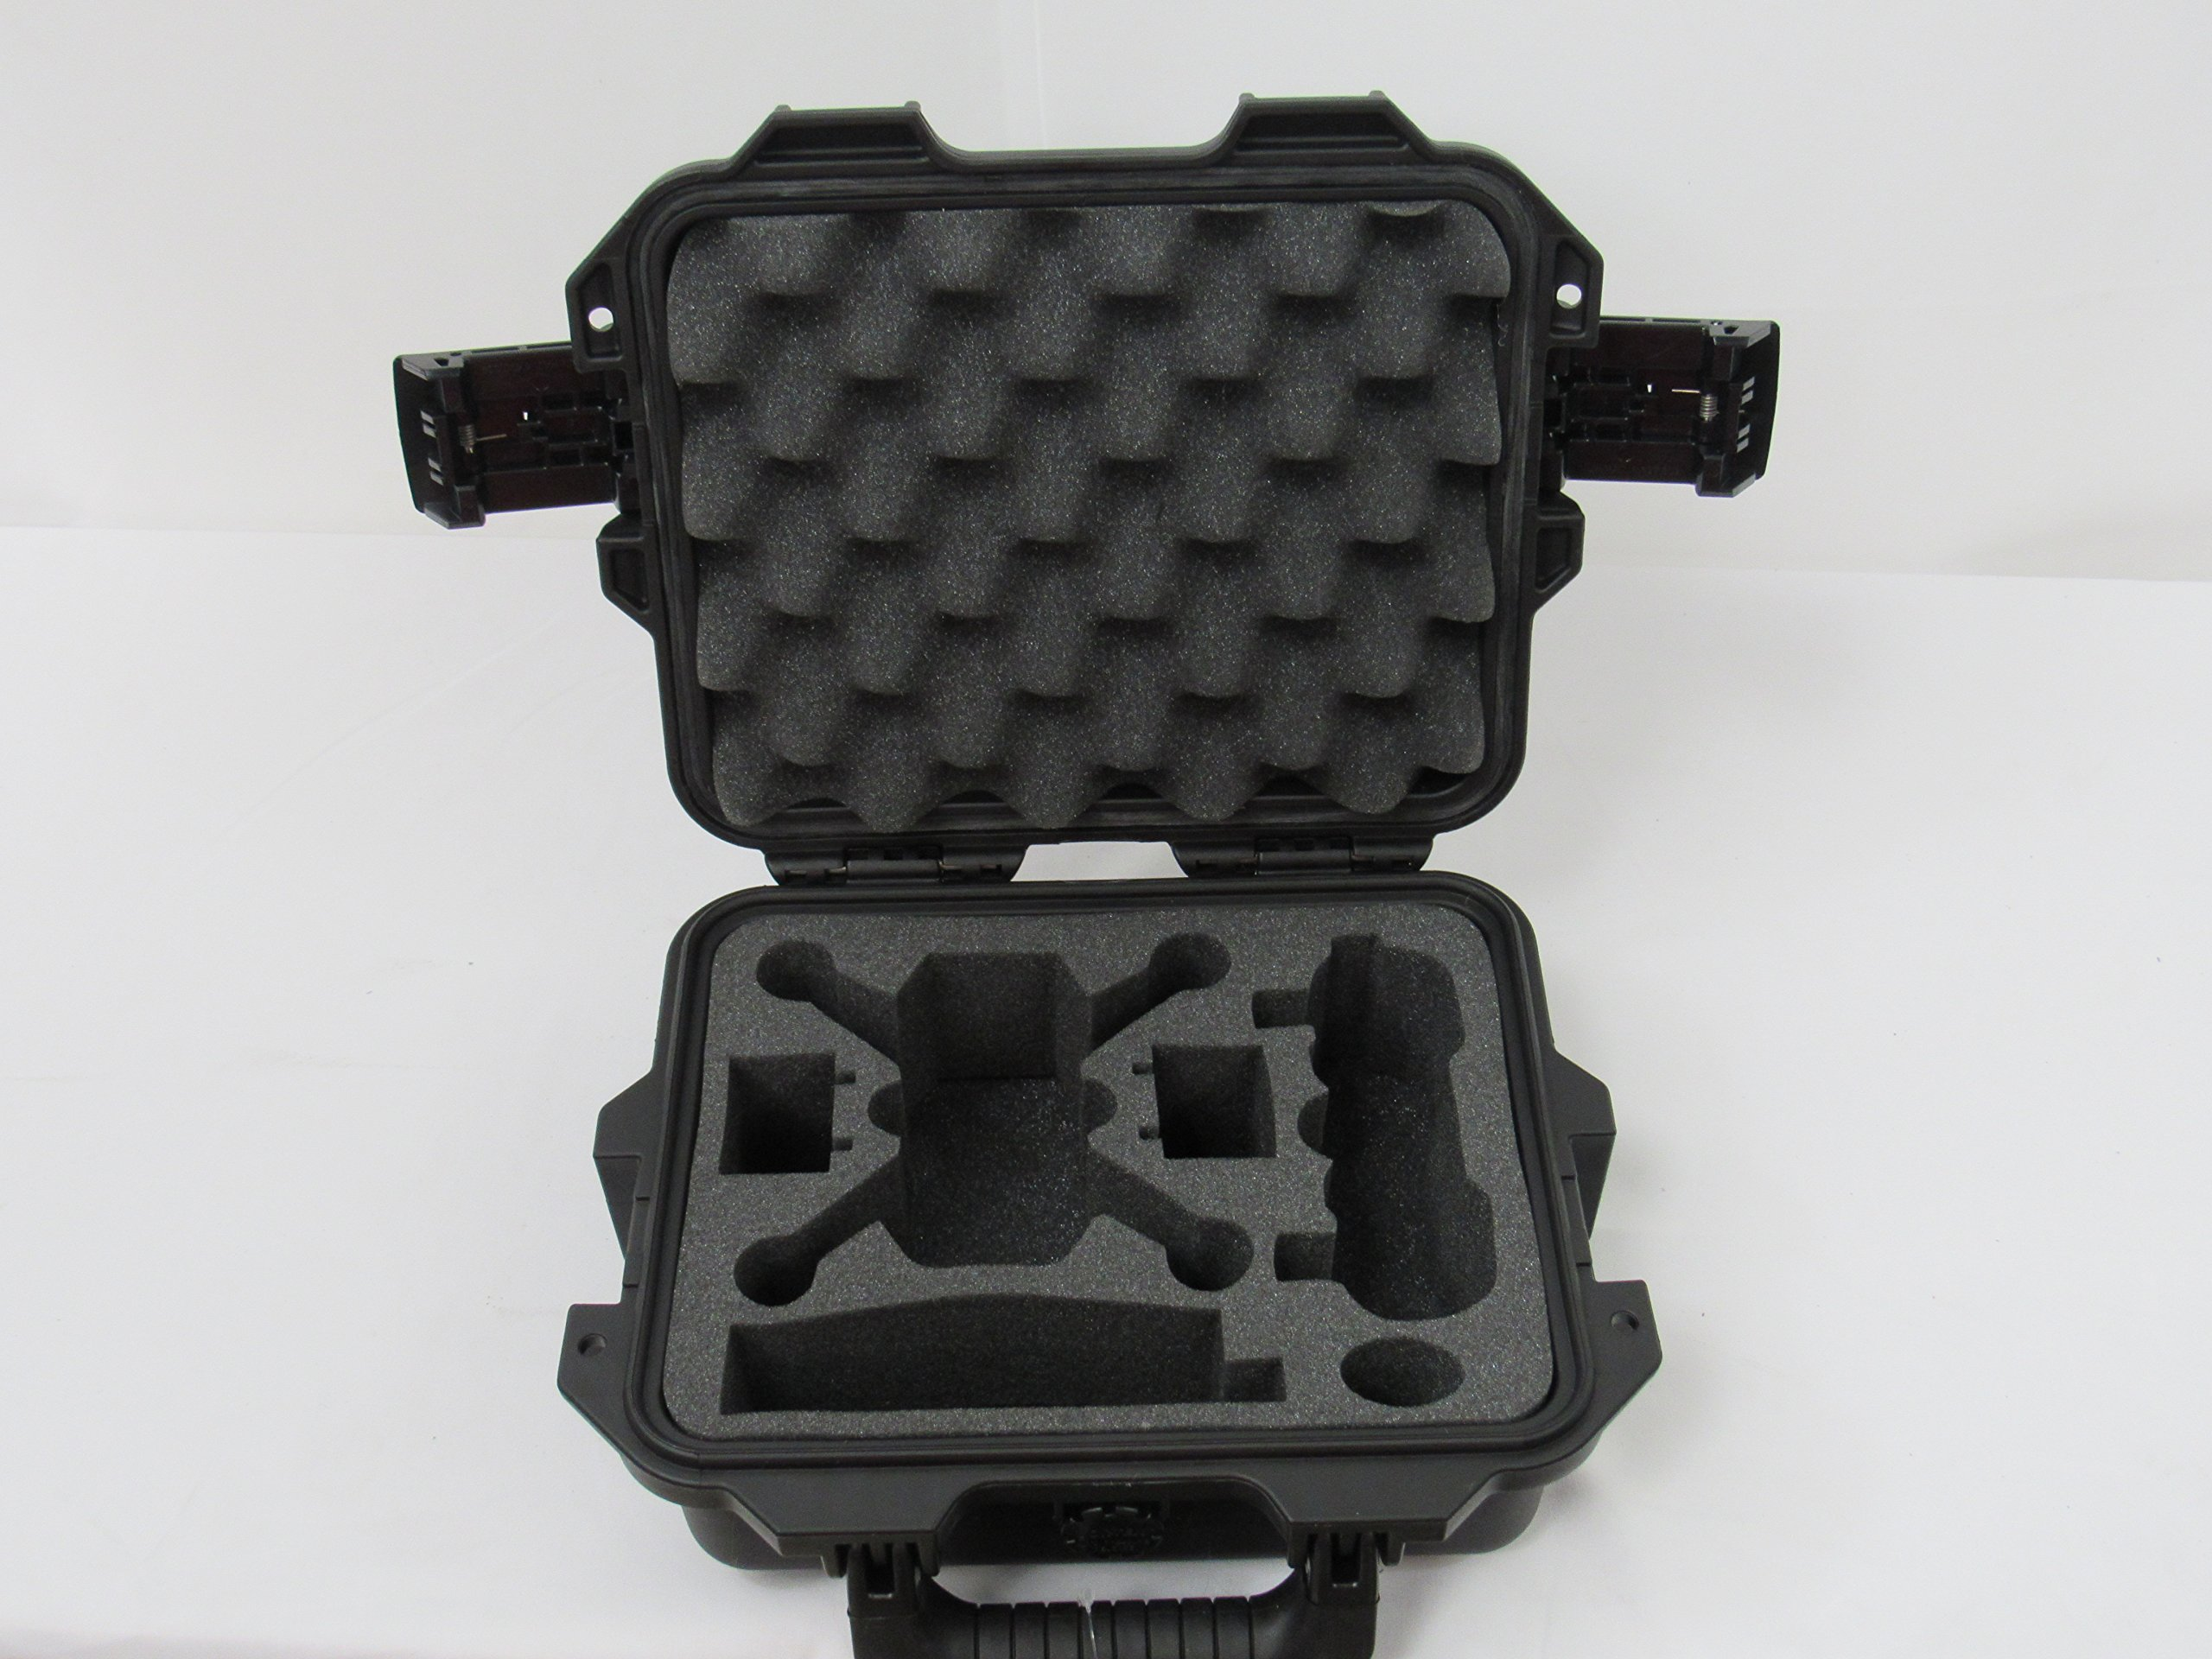 Pelican Storm Case for DJI Spark Drone and Accessories (Case & Foam)